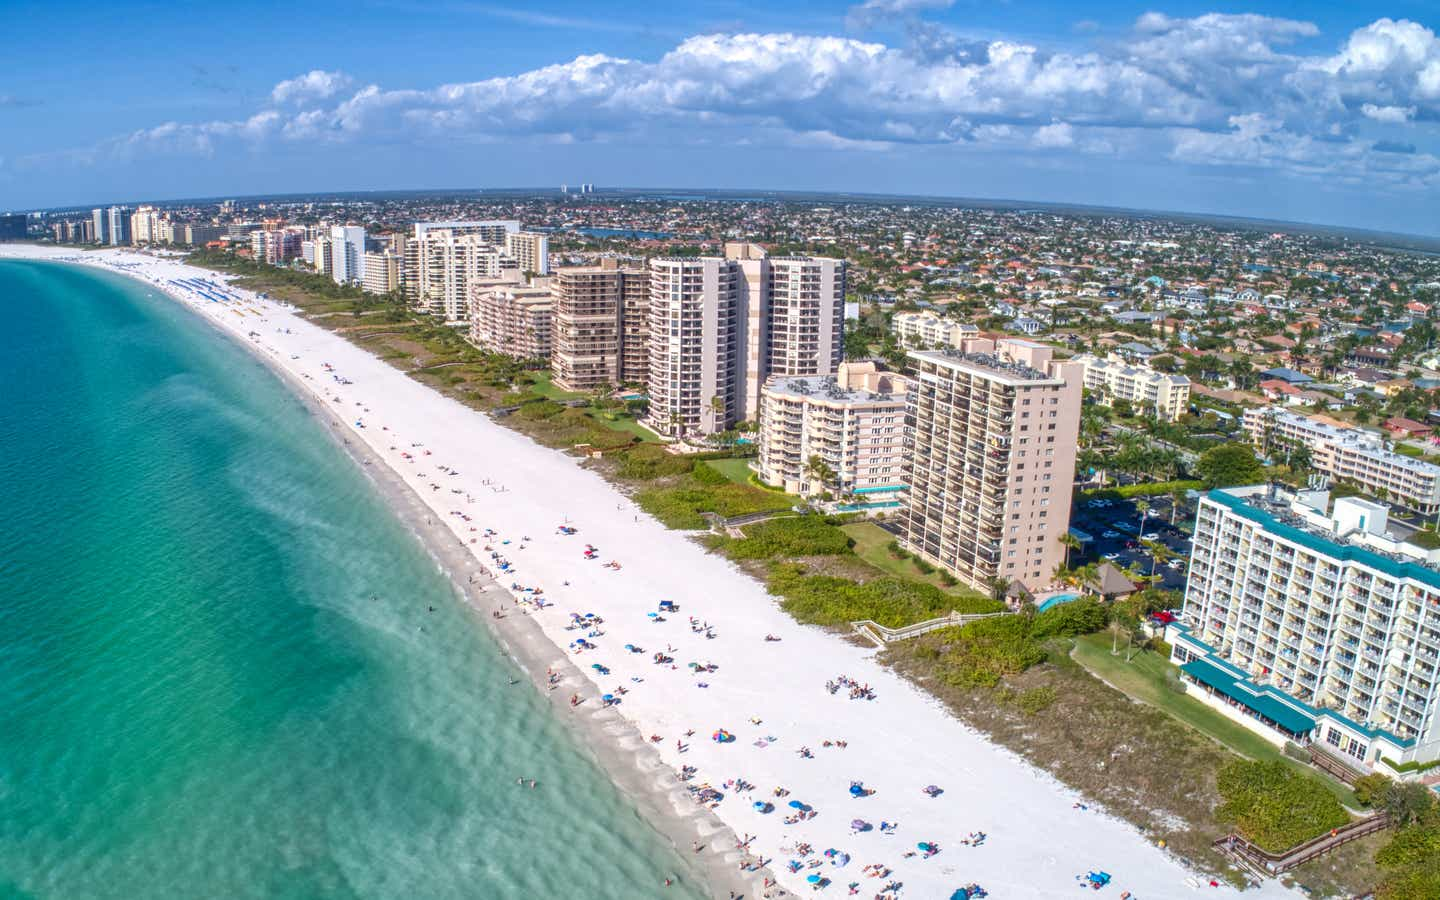 Aerial view of Marco Island, FL